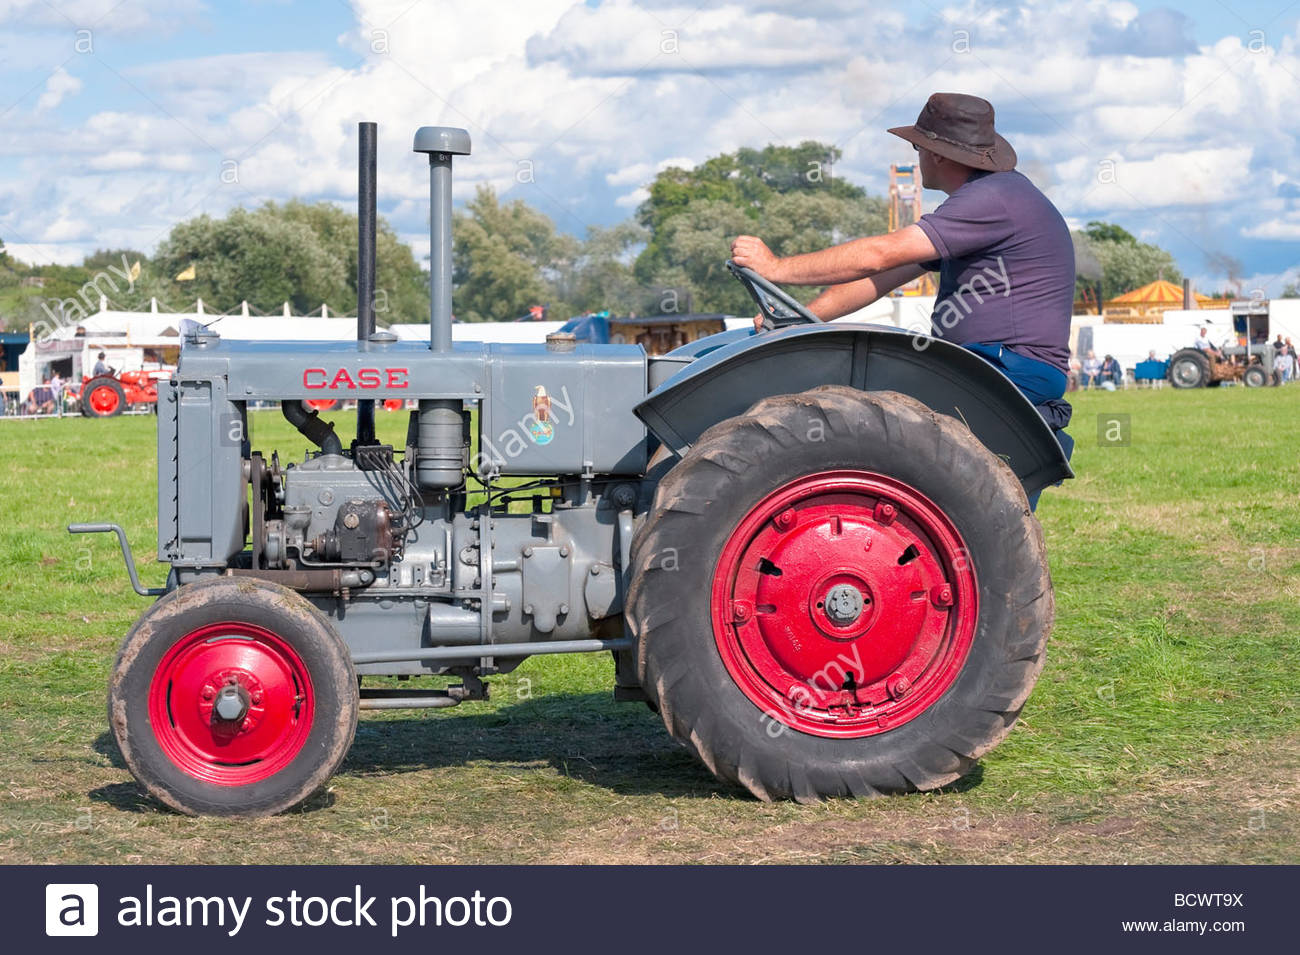 fordson tractor with Stock Photo Vintage Tractor At Welland Steam Rally Uk Case Classic Tractor Parade 25154134 on Watch further Links likewise Stock Photo Vintage Tractor At Welland Steam Rally Uk Case Classic Tractor Parade 25154134 moreover Ferguson further Watch.